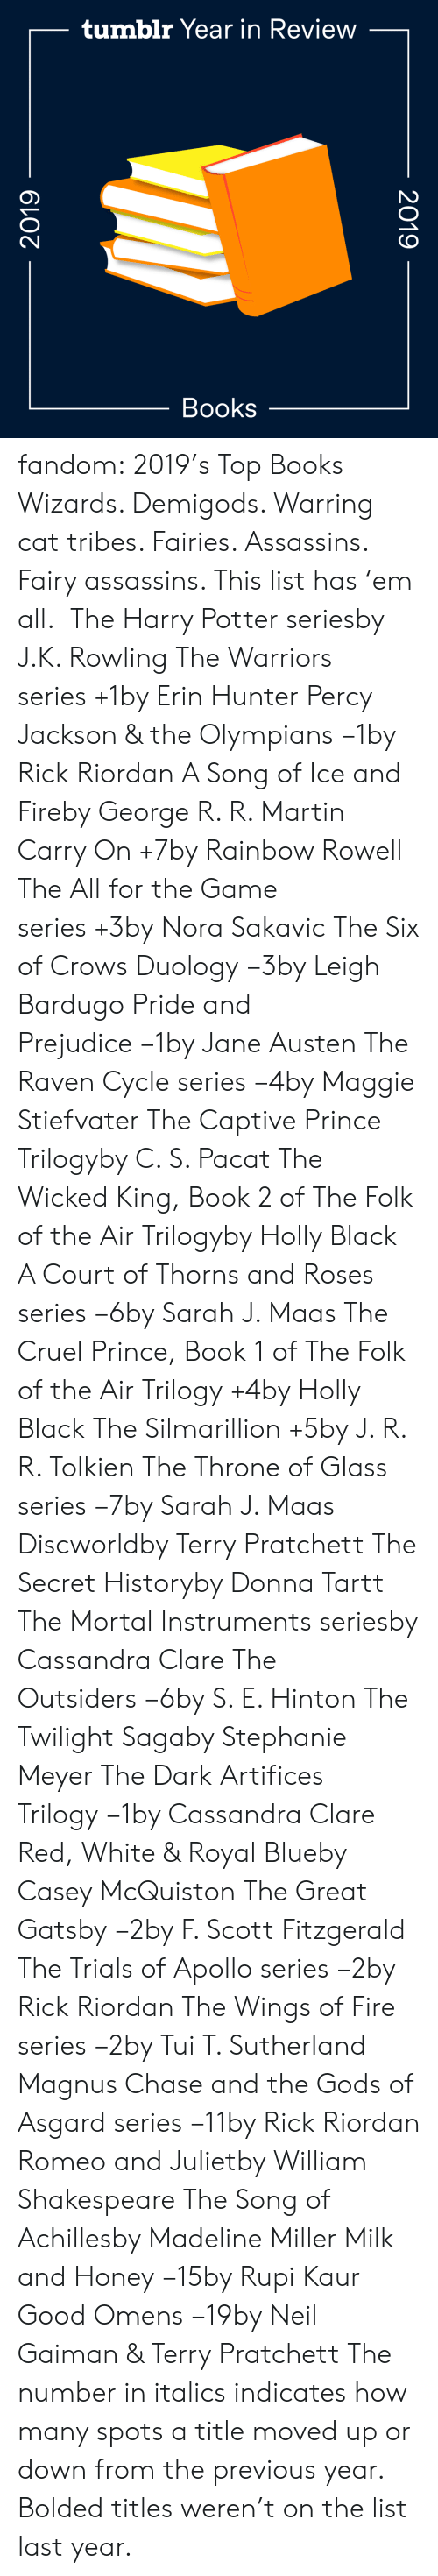 Search: tumblr Year in Review  Books  2019  2019 fandom:  2019's Top Books  Wizards. Demigods. Warring cat tribes. Fairies. Assassins. Fairy assassins. This list has 'em all.   The Harry Potter seriesby J.K. Rowling  The Warriors series +1by Erin Hunter  Percy Jackson & the Olympians −1by Rick Riordan  A Song of Ice and Fireby George R. R. Martin  Carry On +7by Rainbow Rowell  The All for the Game series +3by Nora Sakavic  The Six of Crows Duology −3by Leigh Bardugo  Pride and Prejudice −1by Jane Austen  The Raven Cycle series −4by Maggie Stiefvater  The Captive Prince Trilogyby C. S. Pacat  The Wicked King, Book 2 of The Folk of the Air Trilogyby Holly Black  A Court of Thorns and Roses series −6by Sarah J. Maas  The Cruel Prince, Book 1 of The Folk of the Air Trilogy +4by Holly Black  The Silmarillion +5by J. R. R. Tolkien  The Throne of Glass series −7by Sarah J. Maas  Discworldby Terry Pratchett  The Secret Historyby Donna Tartt  The Mortal Instruments seriesby Cassandra Clare  The Outsiders −6by S. E. Hinton  The Twilight Sagaby Stephanie Meyer  The Dark Artifices Trilogy −1by Cassandra Clare  Red, White & Royal Blueby Casey McQuiston  The Great Gatsby −2by F. Scott Fitzgerald  The Trials of Apollo series −2by Rick Riordan  The Wings of Fire series −2by Tui T. Sutherland  Magnus Chase and the Gods of Asgard series −11by Rick Riordan  Romeo and Julietby William Shakespeare  The Song of Achillesby Madeline Miller  Milk and Honey −15by Rupi Kaur  Good Omens −19by Neil Gaiman & Terry Pratchett The number in italics indicates how many spots a title moved up or down from the previous year. Bolded titles weren't on the list last year.